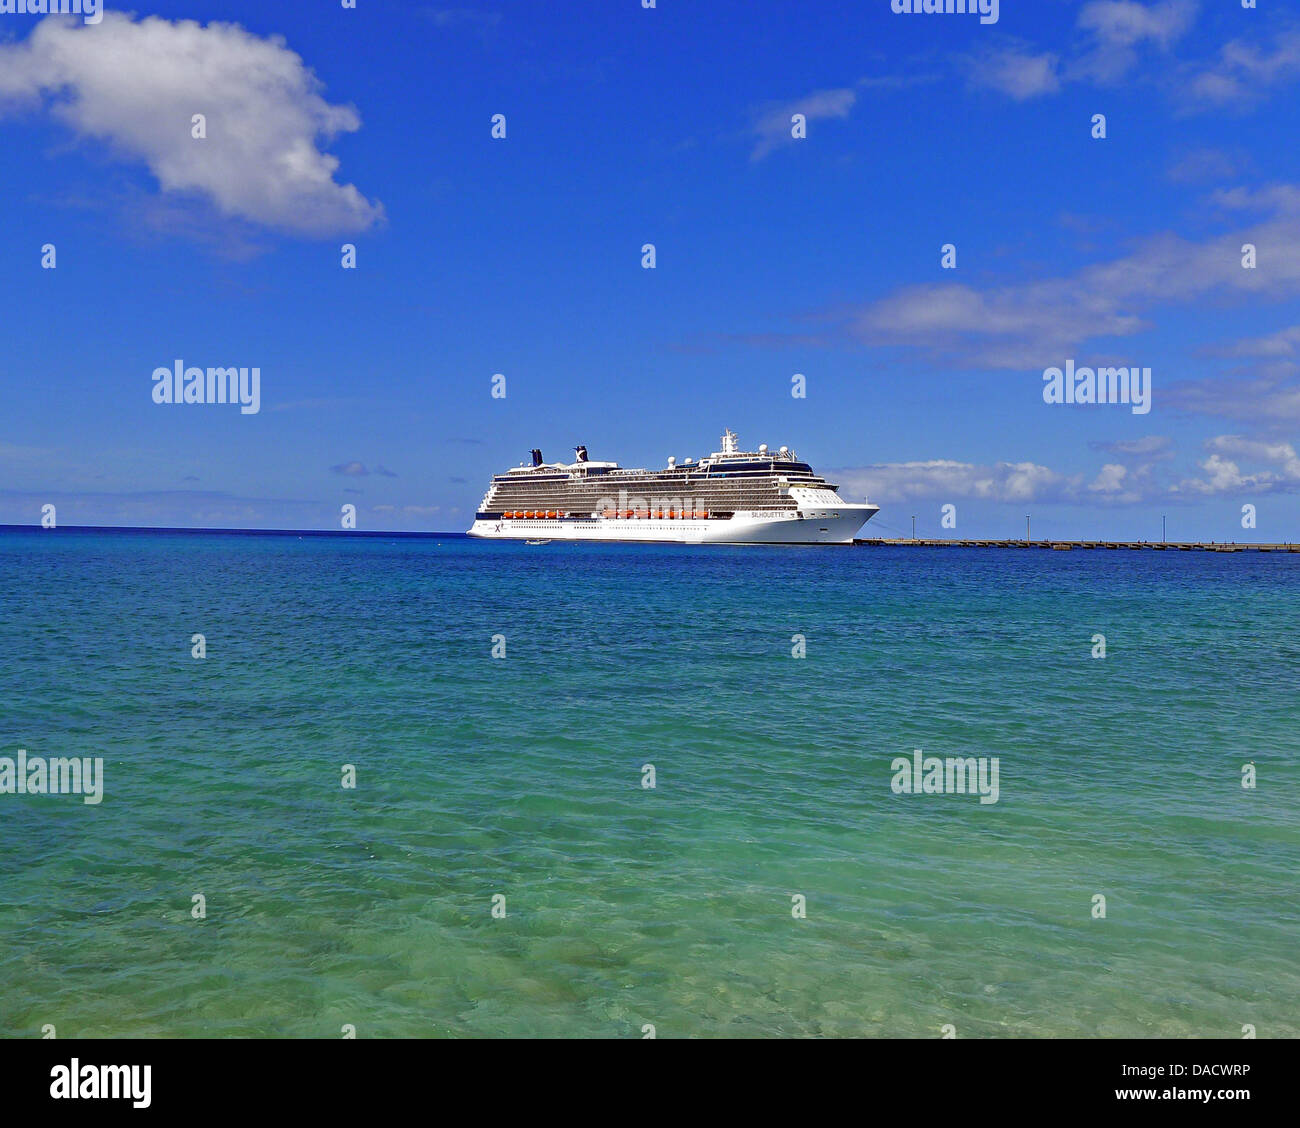 The Celebrity Silhouette, the fourth of five Solstice-class cruise ships operated by Celebrity Cruises, a subsidiary - Stock Image